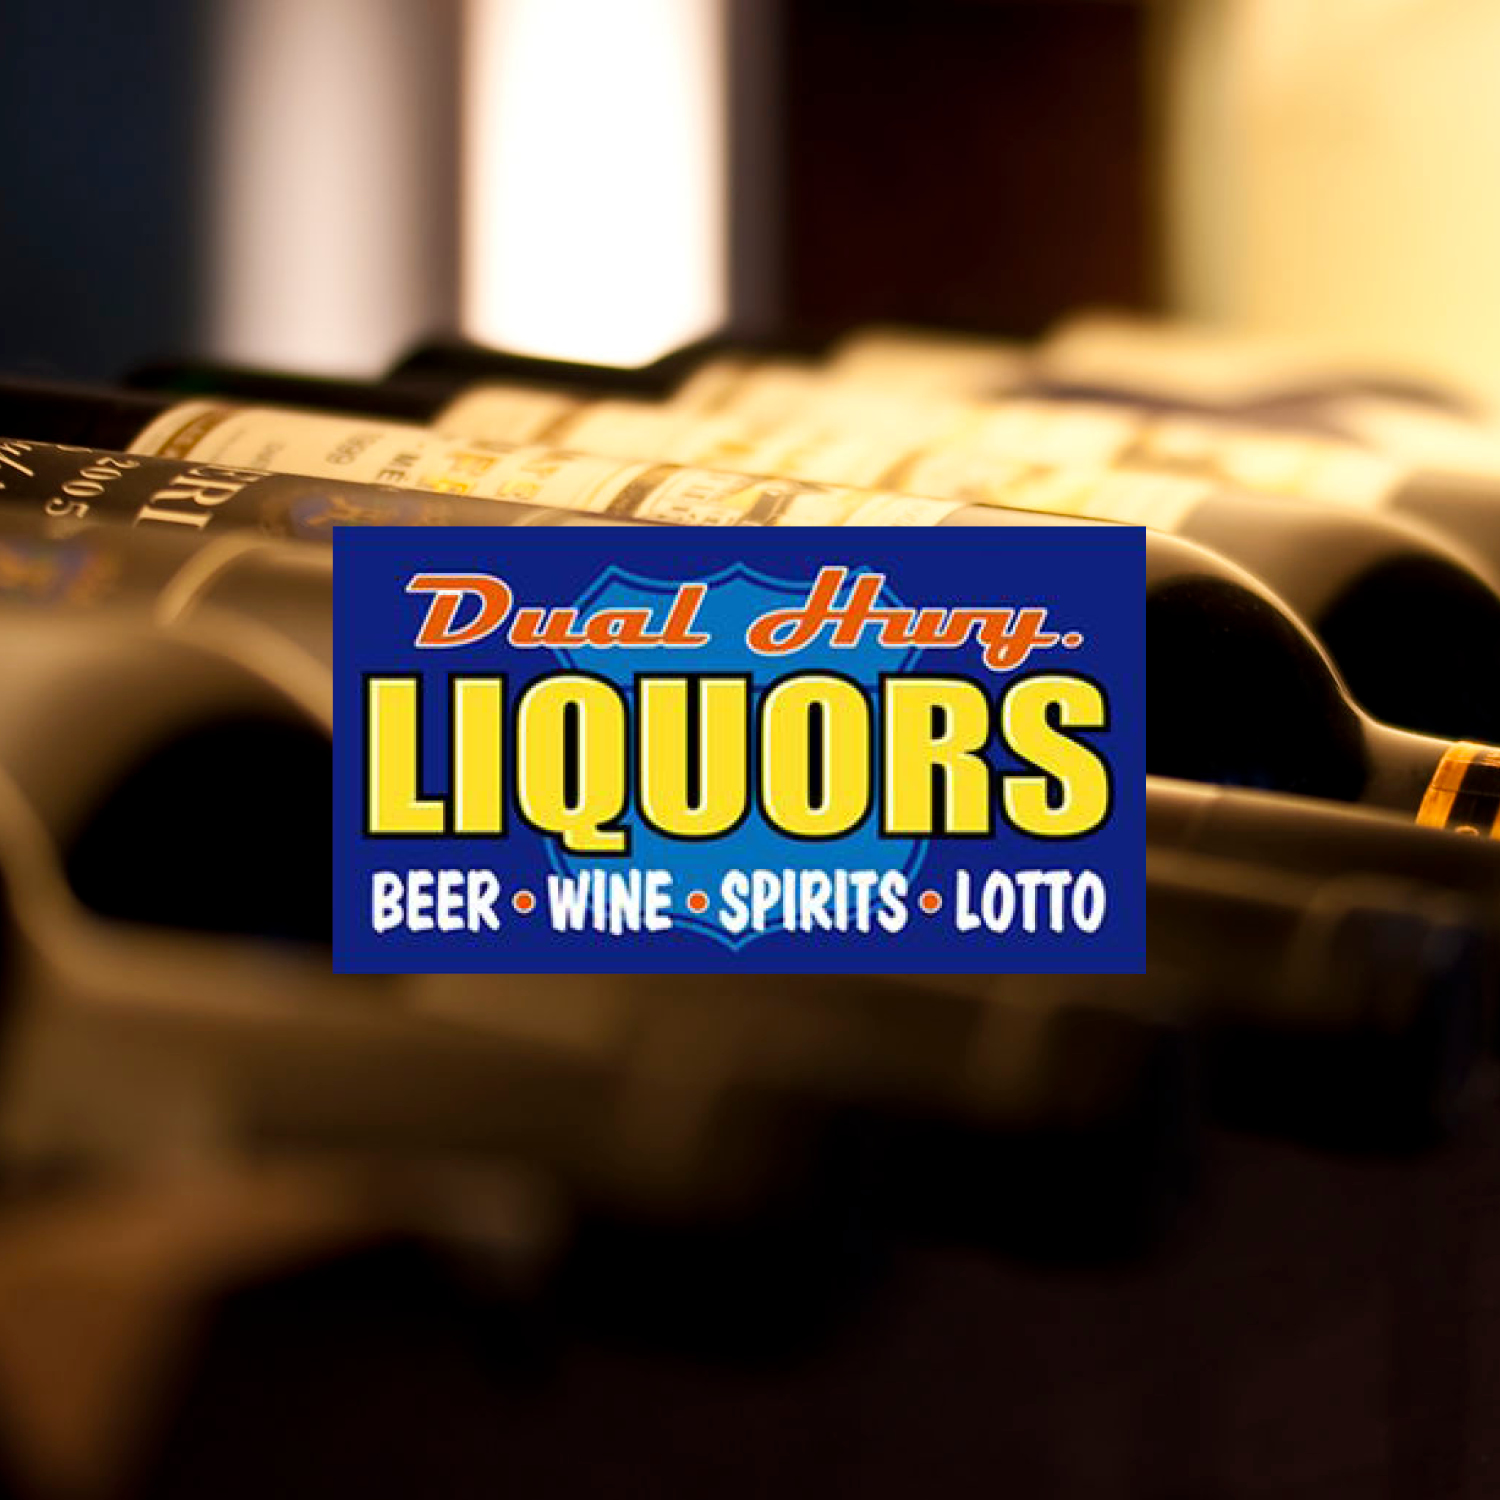 Featuring a large selection of your favorite beers, wines, and spirits.       -Click image to view current offers-